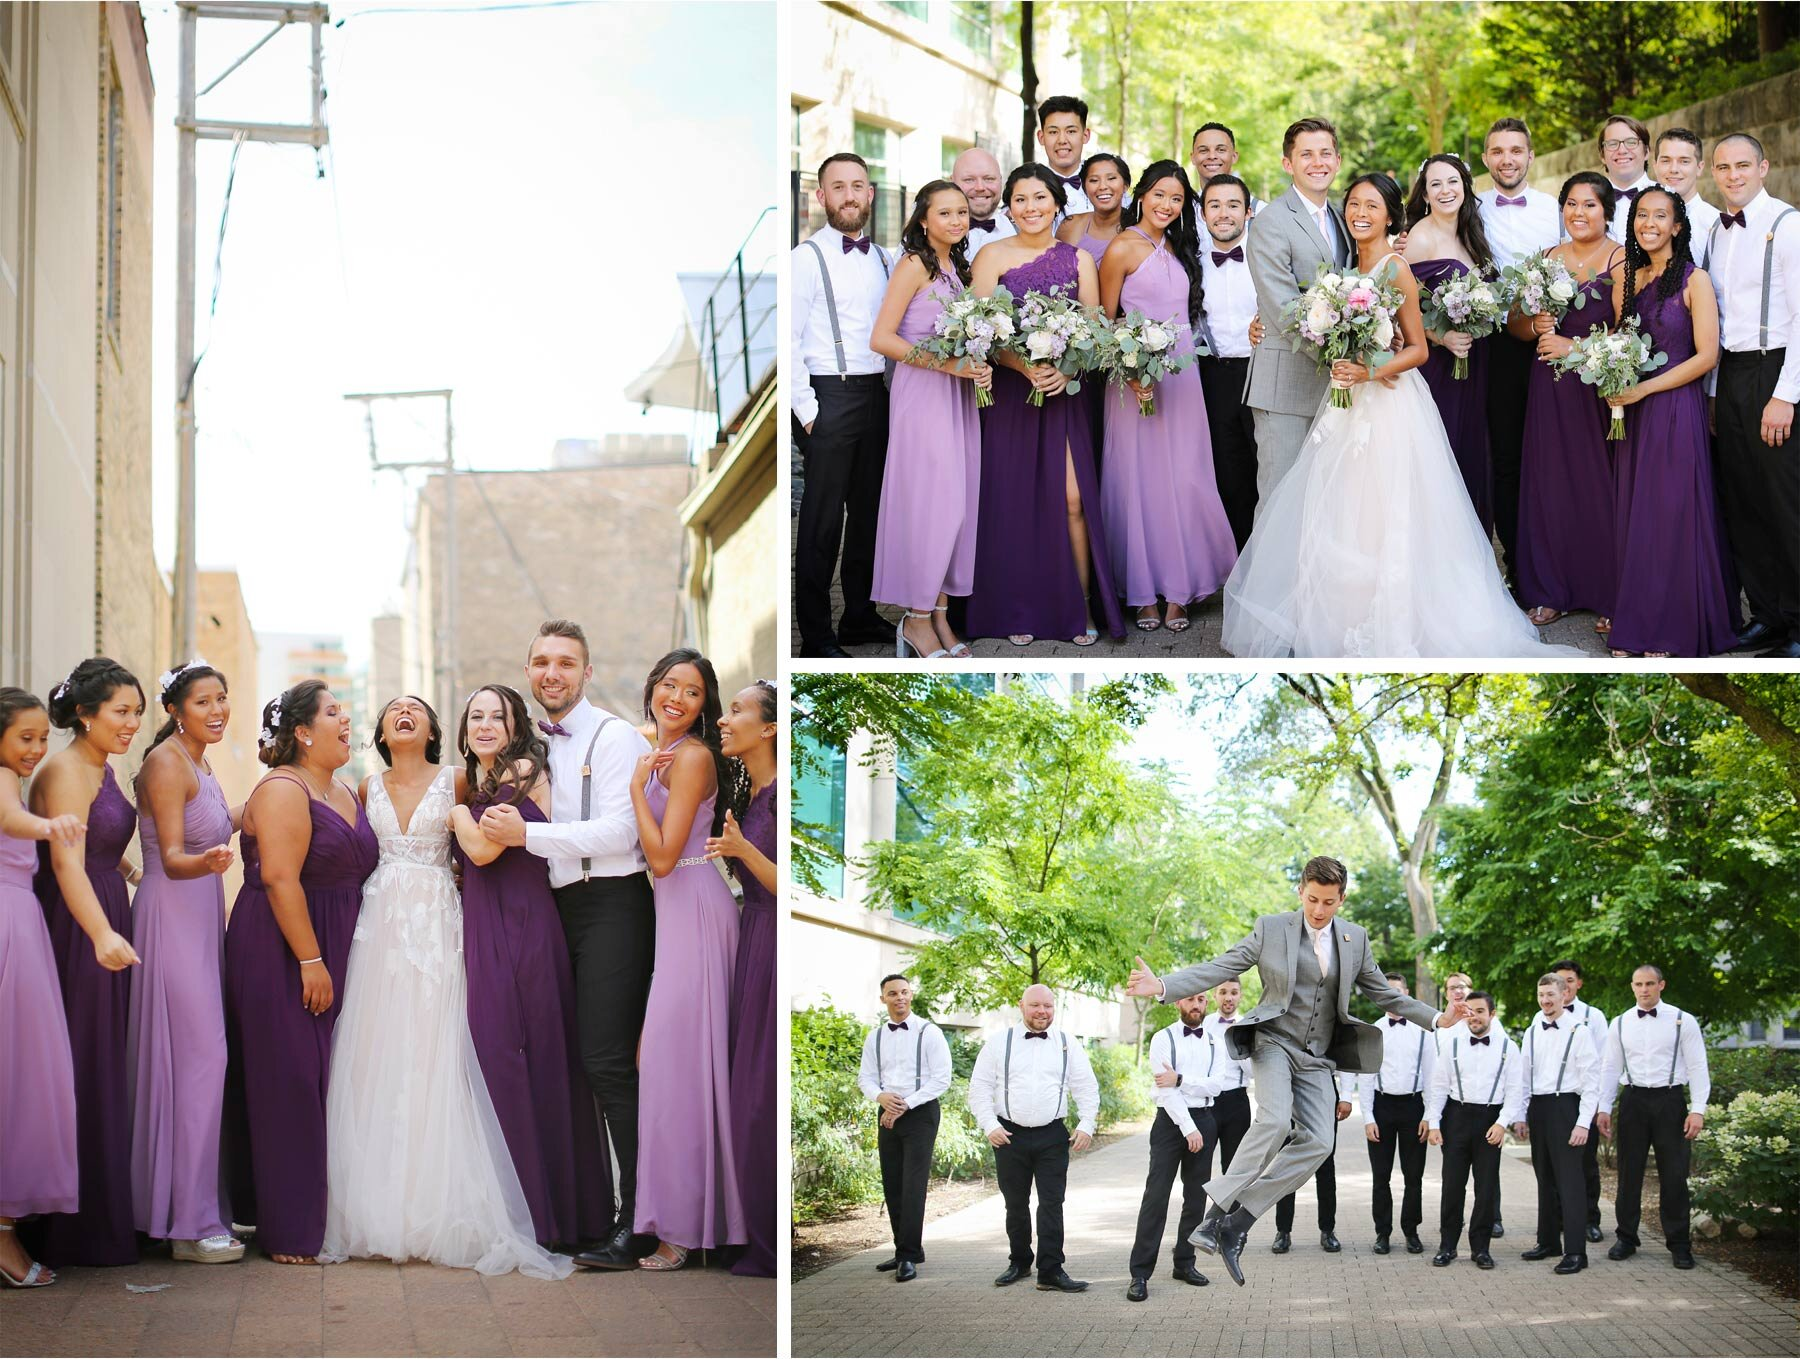 08-Wedding-by-Andrew-Vick-Photography-Chicago-Illinois-Groomsmen-Bridesmaids-Ashley-and-Nicholas.jpg